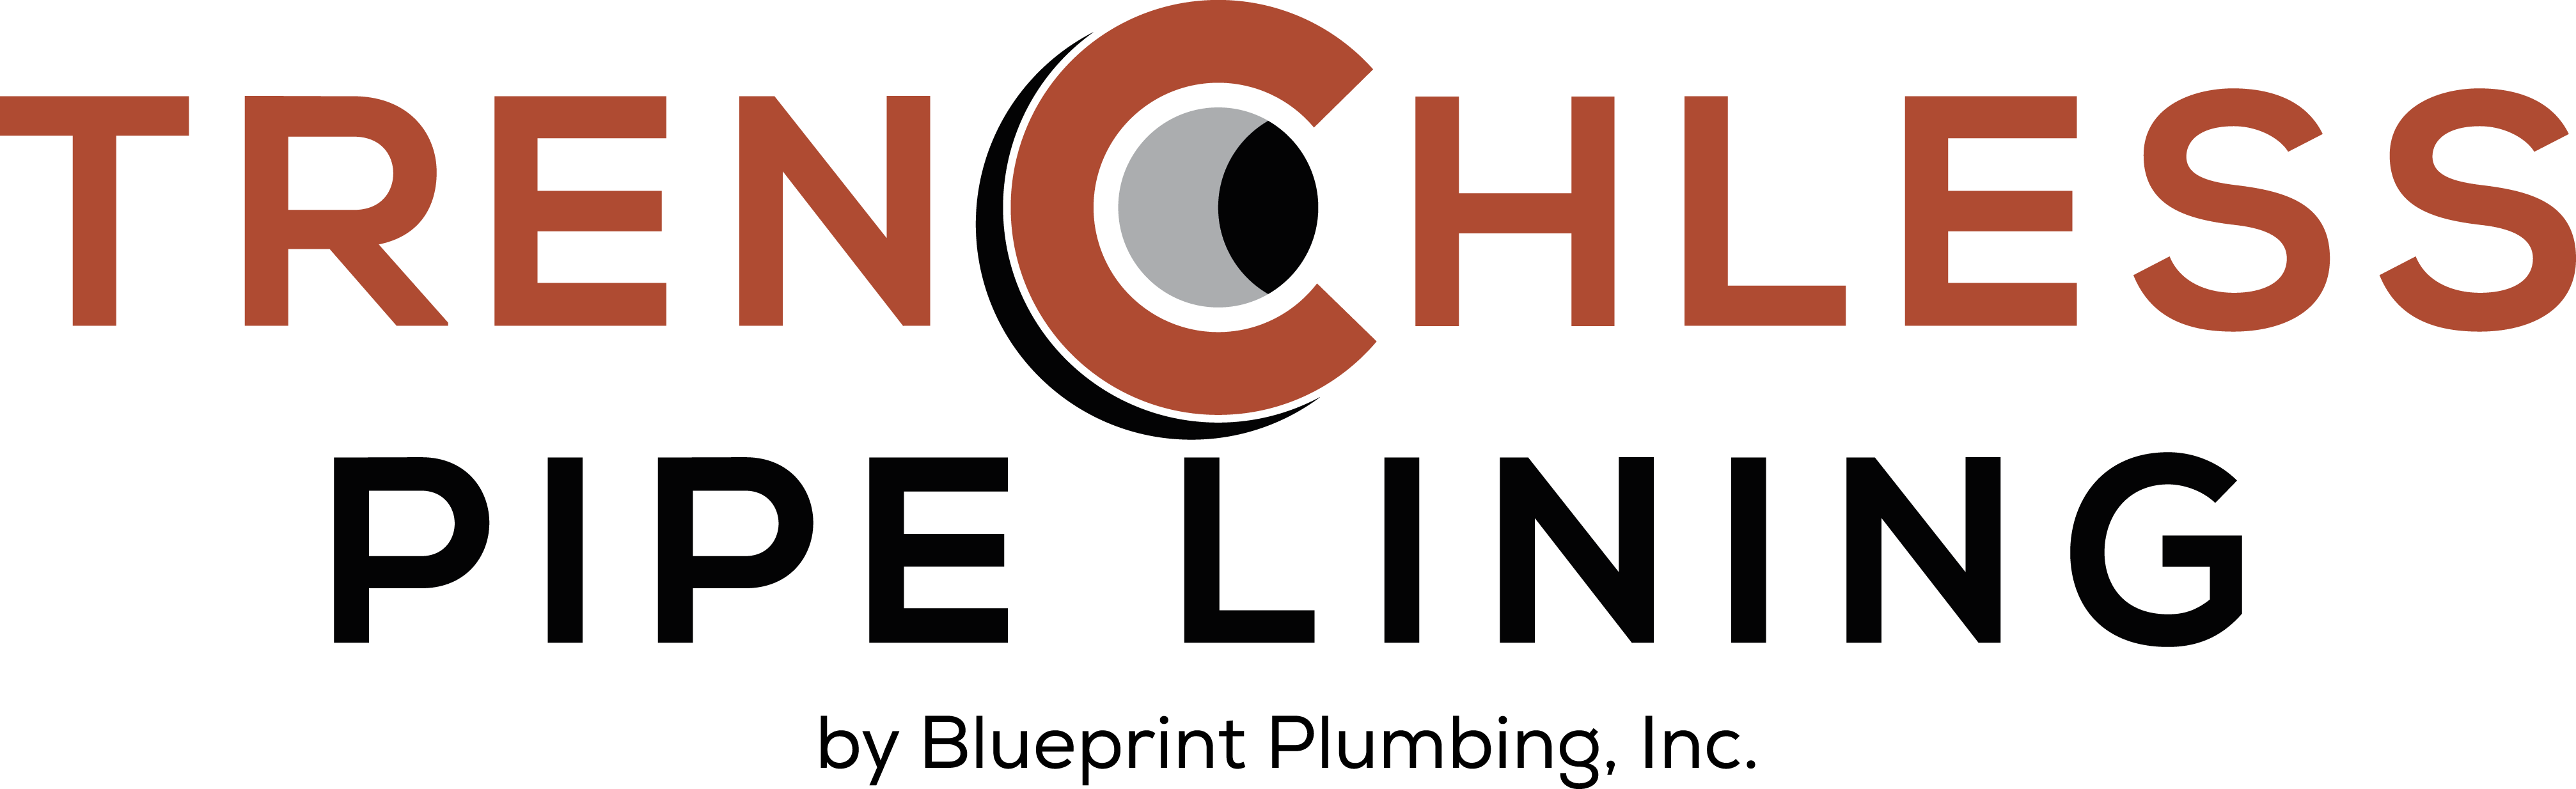 trenchless pipe lining logo